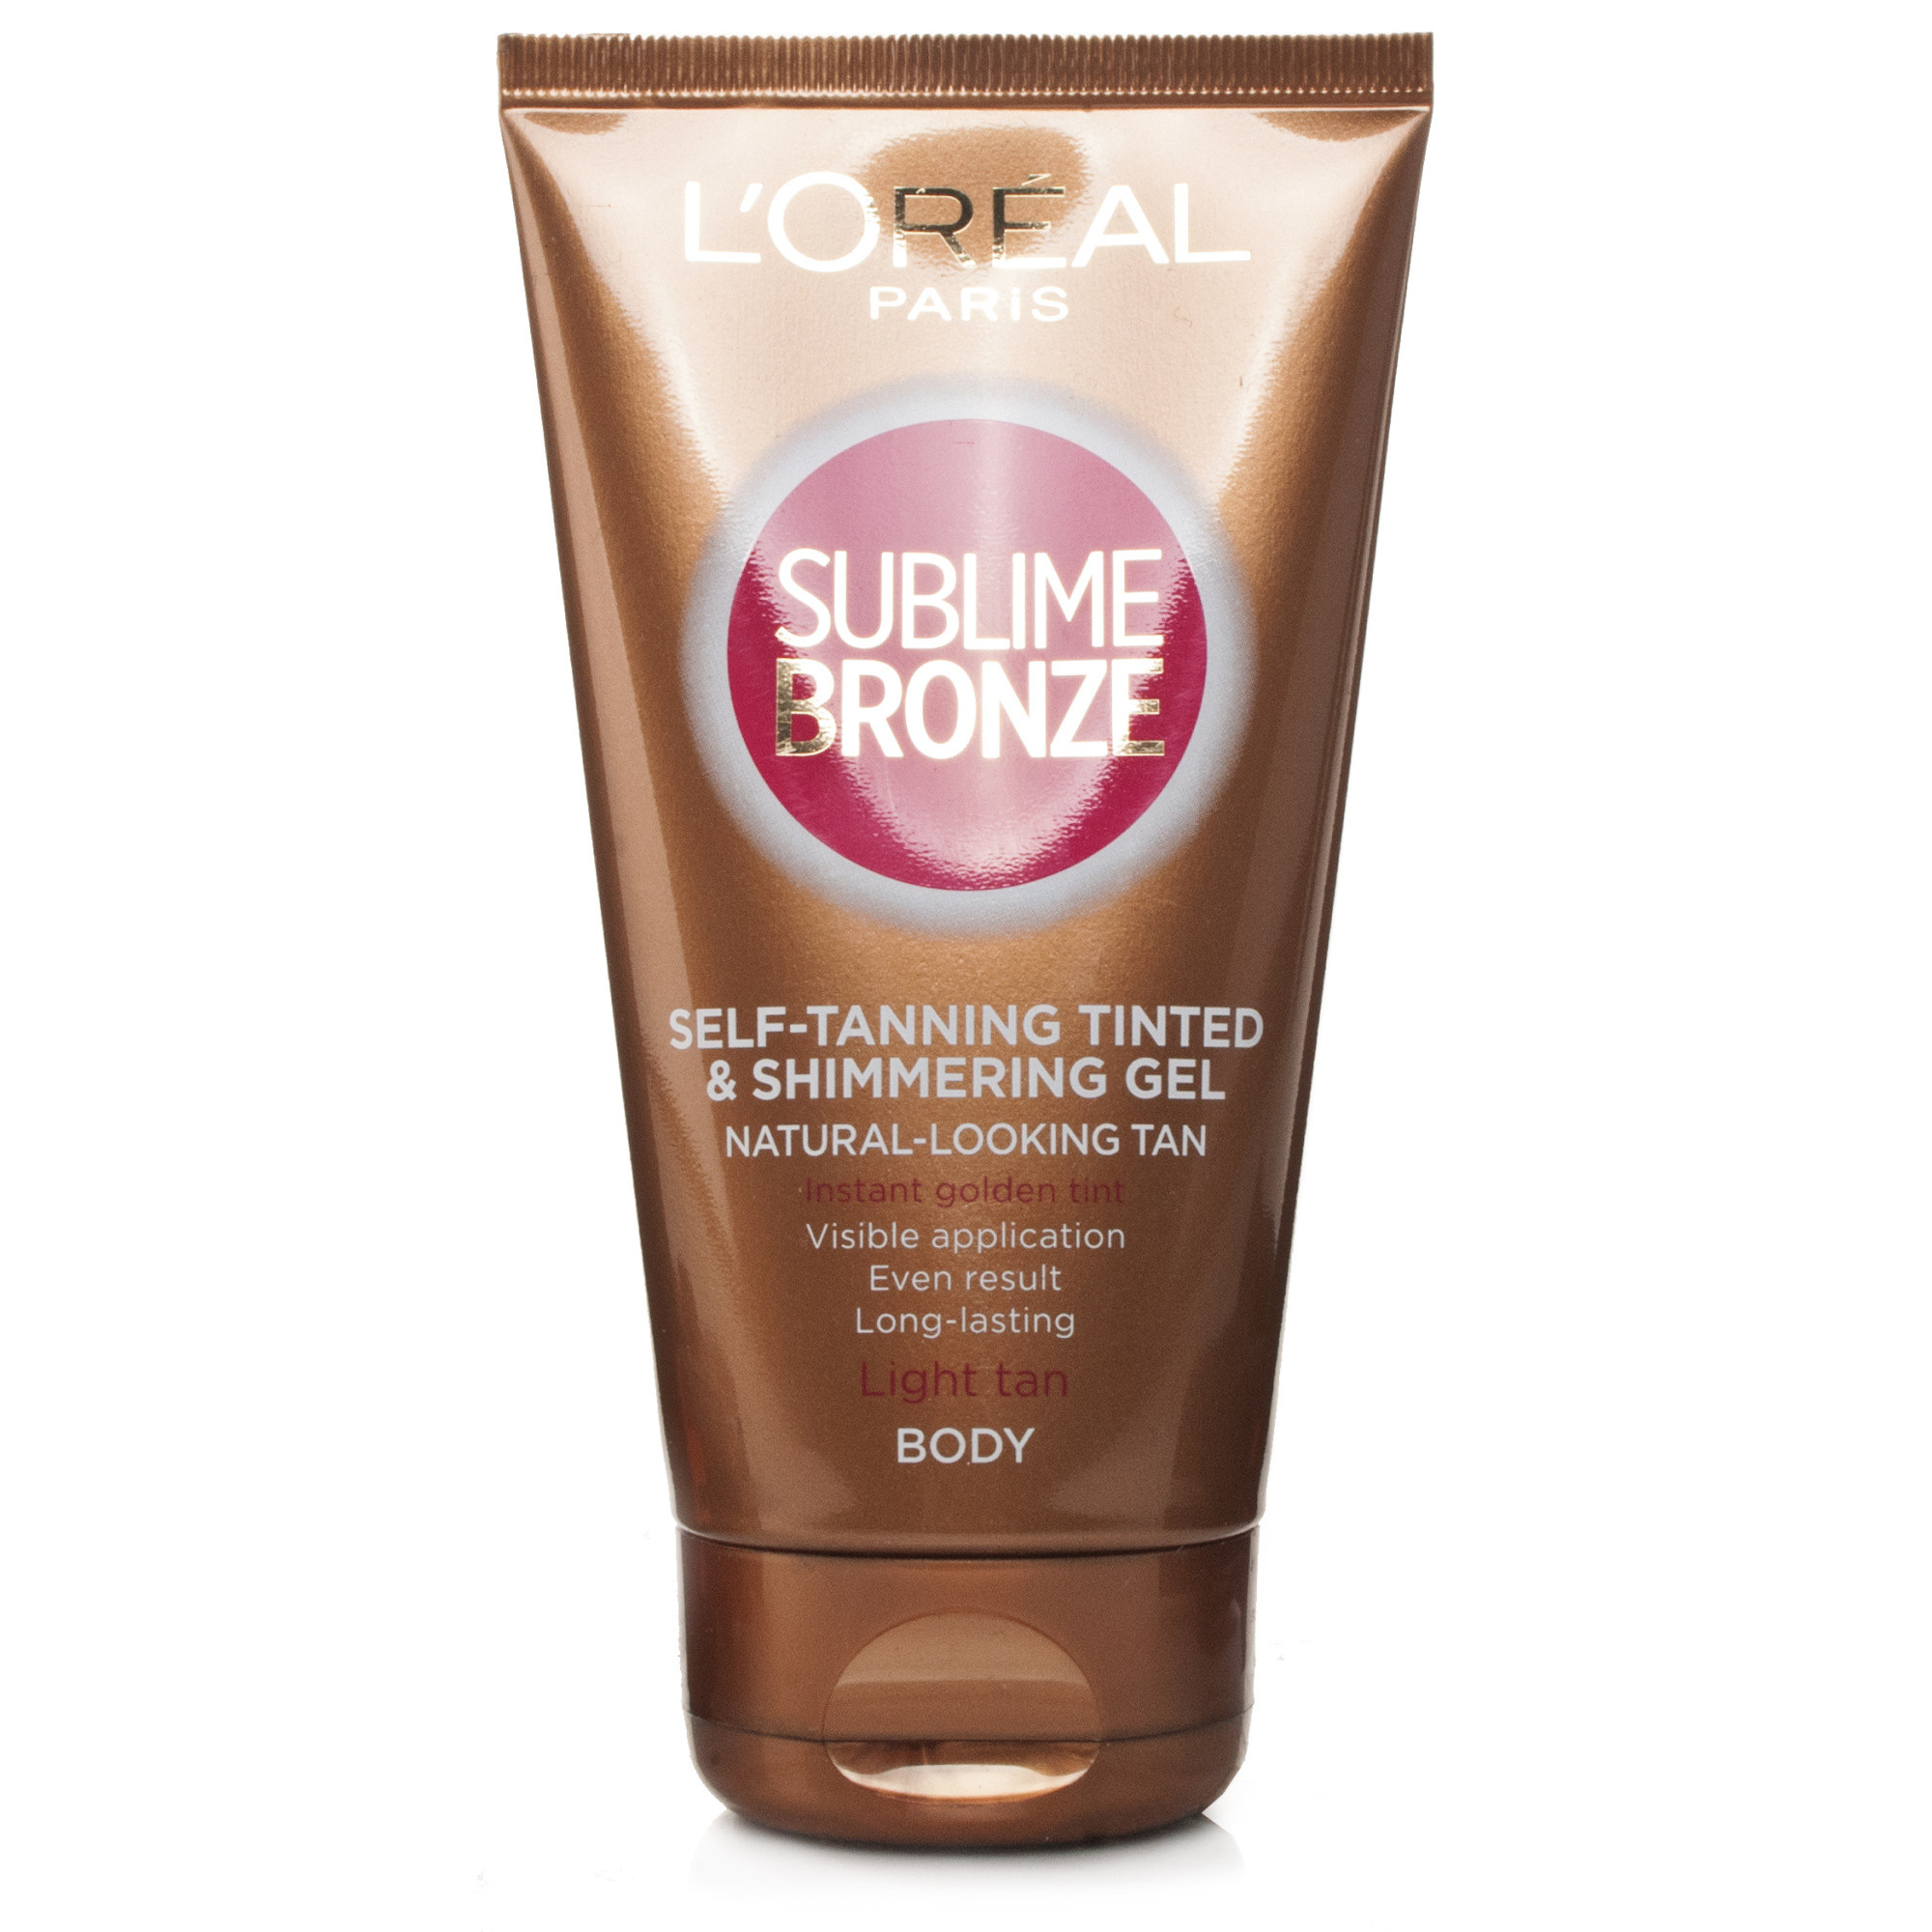 L'oreal Sublime Bronze Self-Tanning Gel Tinted & Shimmering Fair Skin